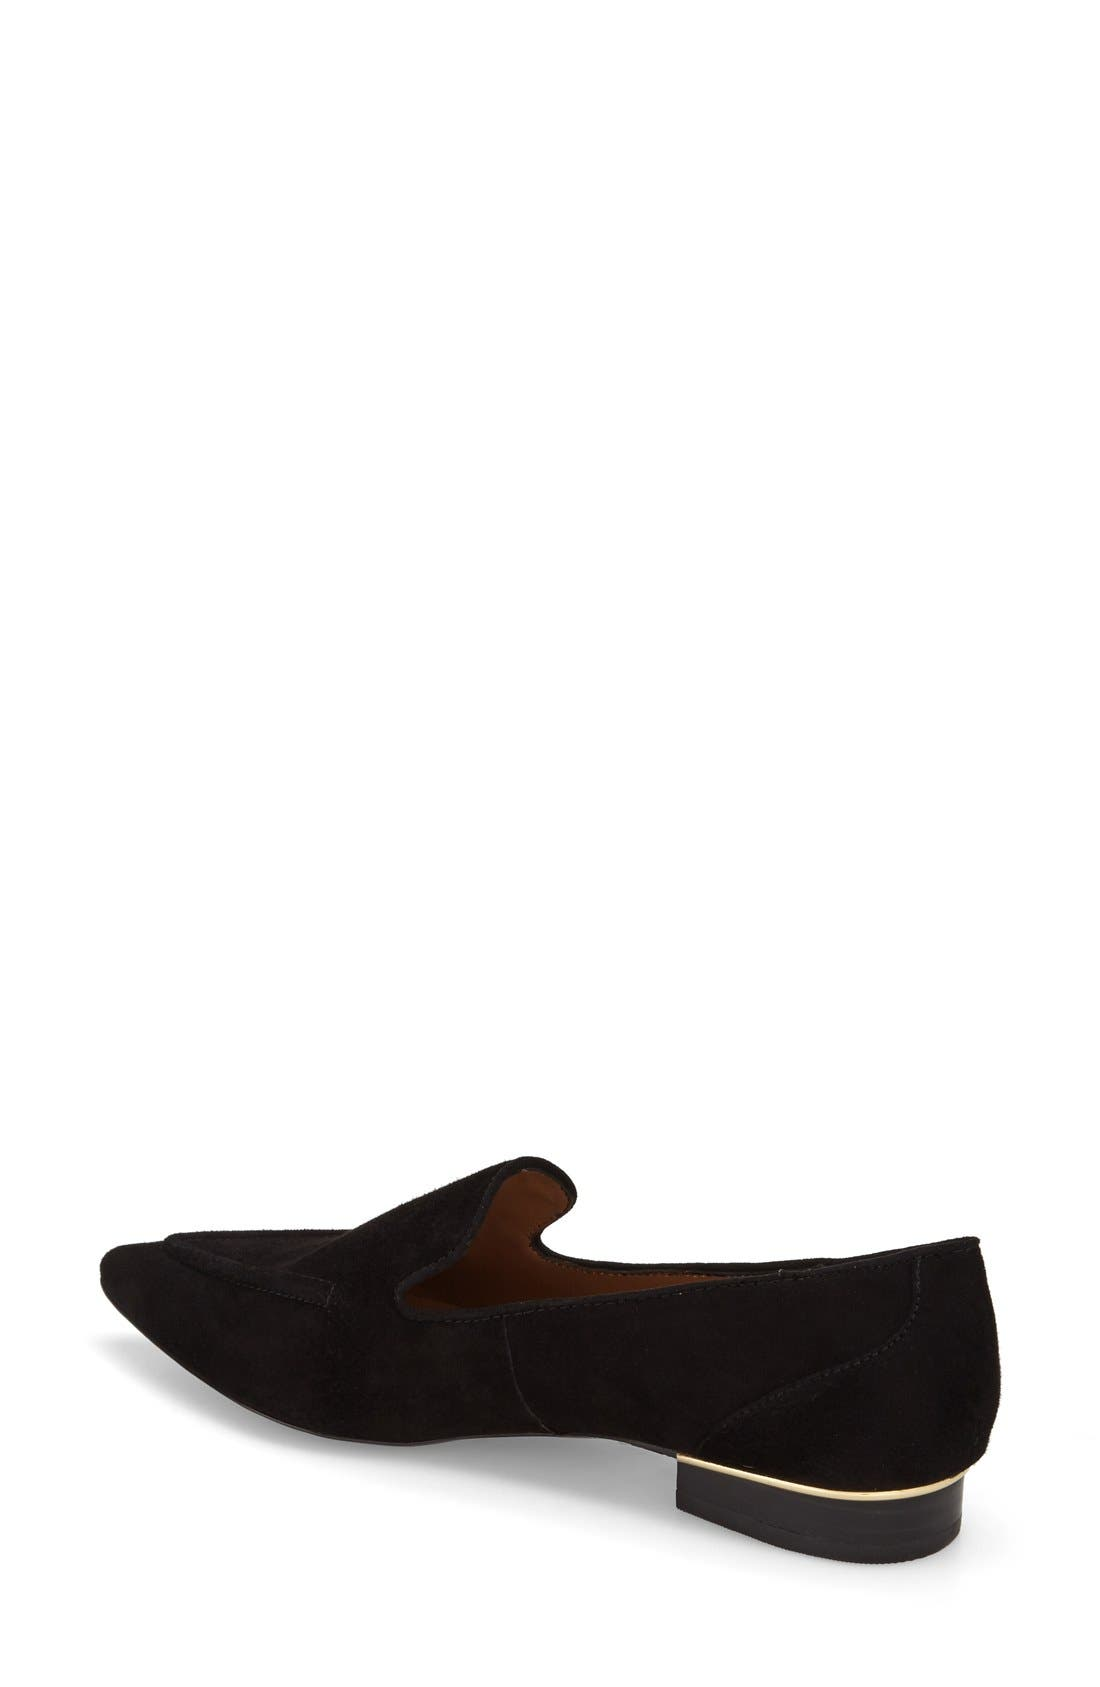 TOPSHOP, 'Kindred' Pointy Toe Loafer, Alternate thumbnail 3, color, 001